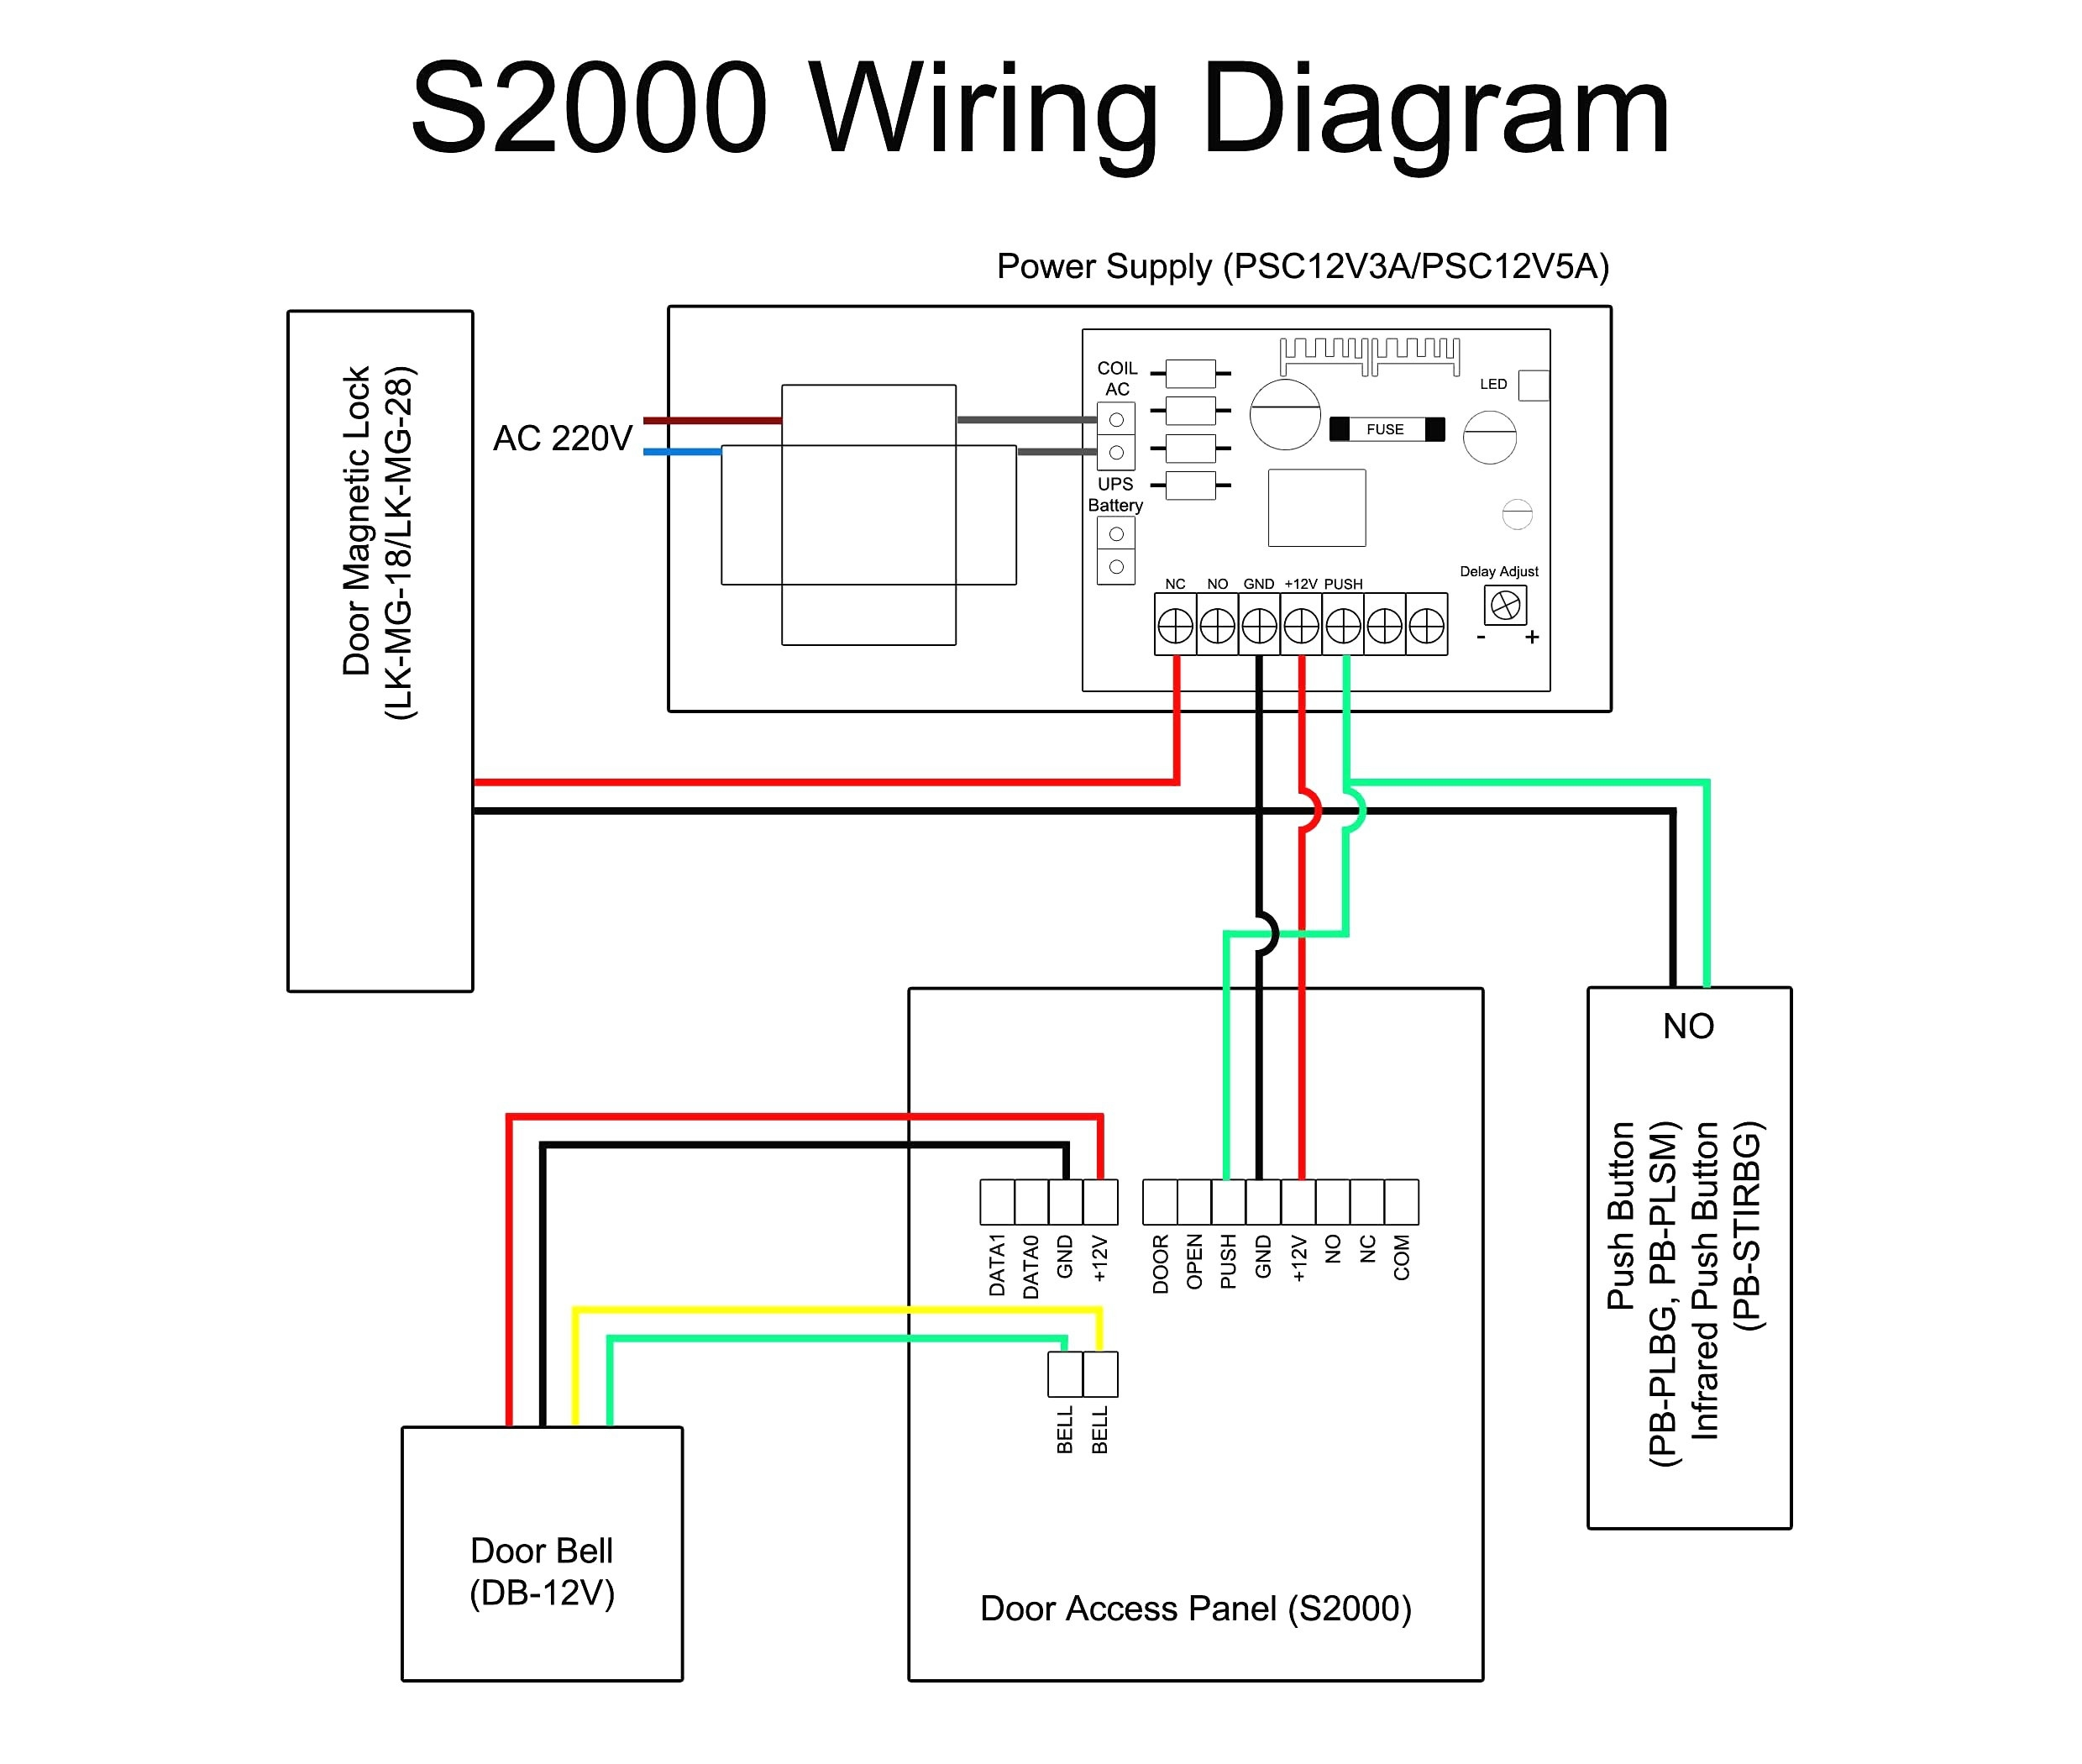 ssc camera wire diagram wiring diagram schematic rj11 wiring diagram for camera wiring diagram data camera buttons diagram rj11 wiring diagram for camera